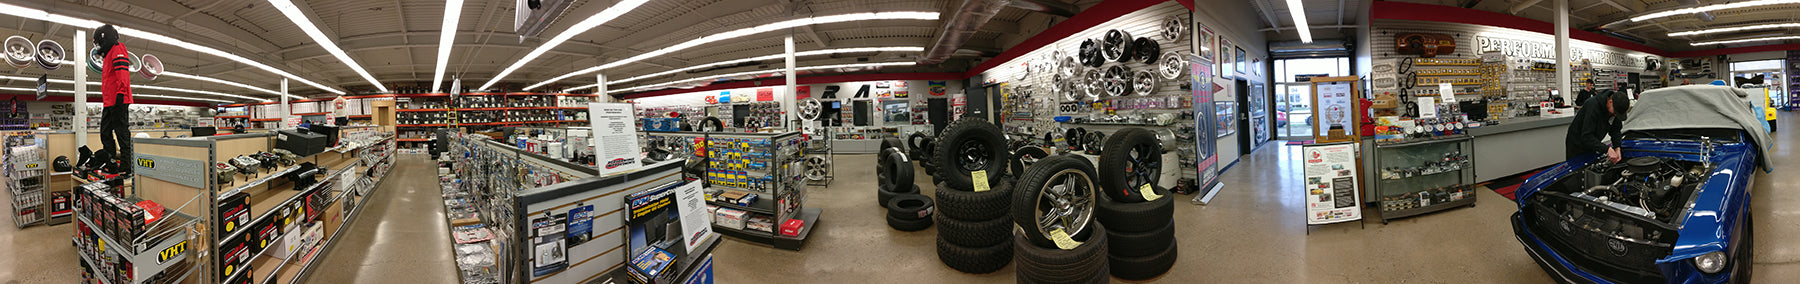 Performance Improvements Toronto Location 87 Advance Superstore